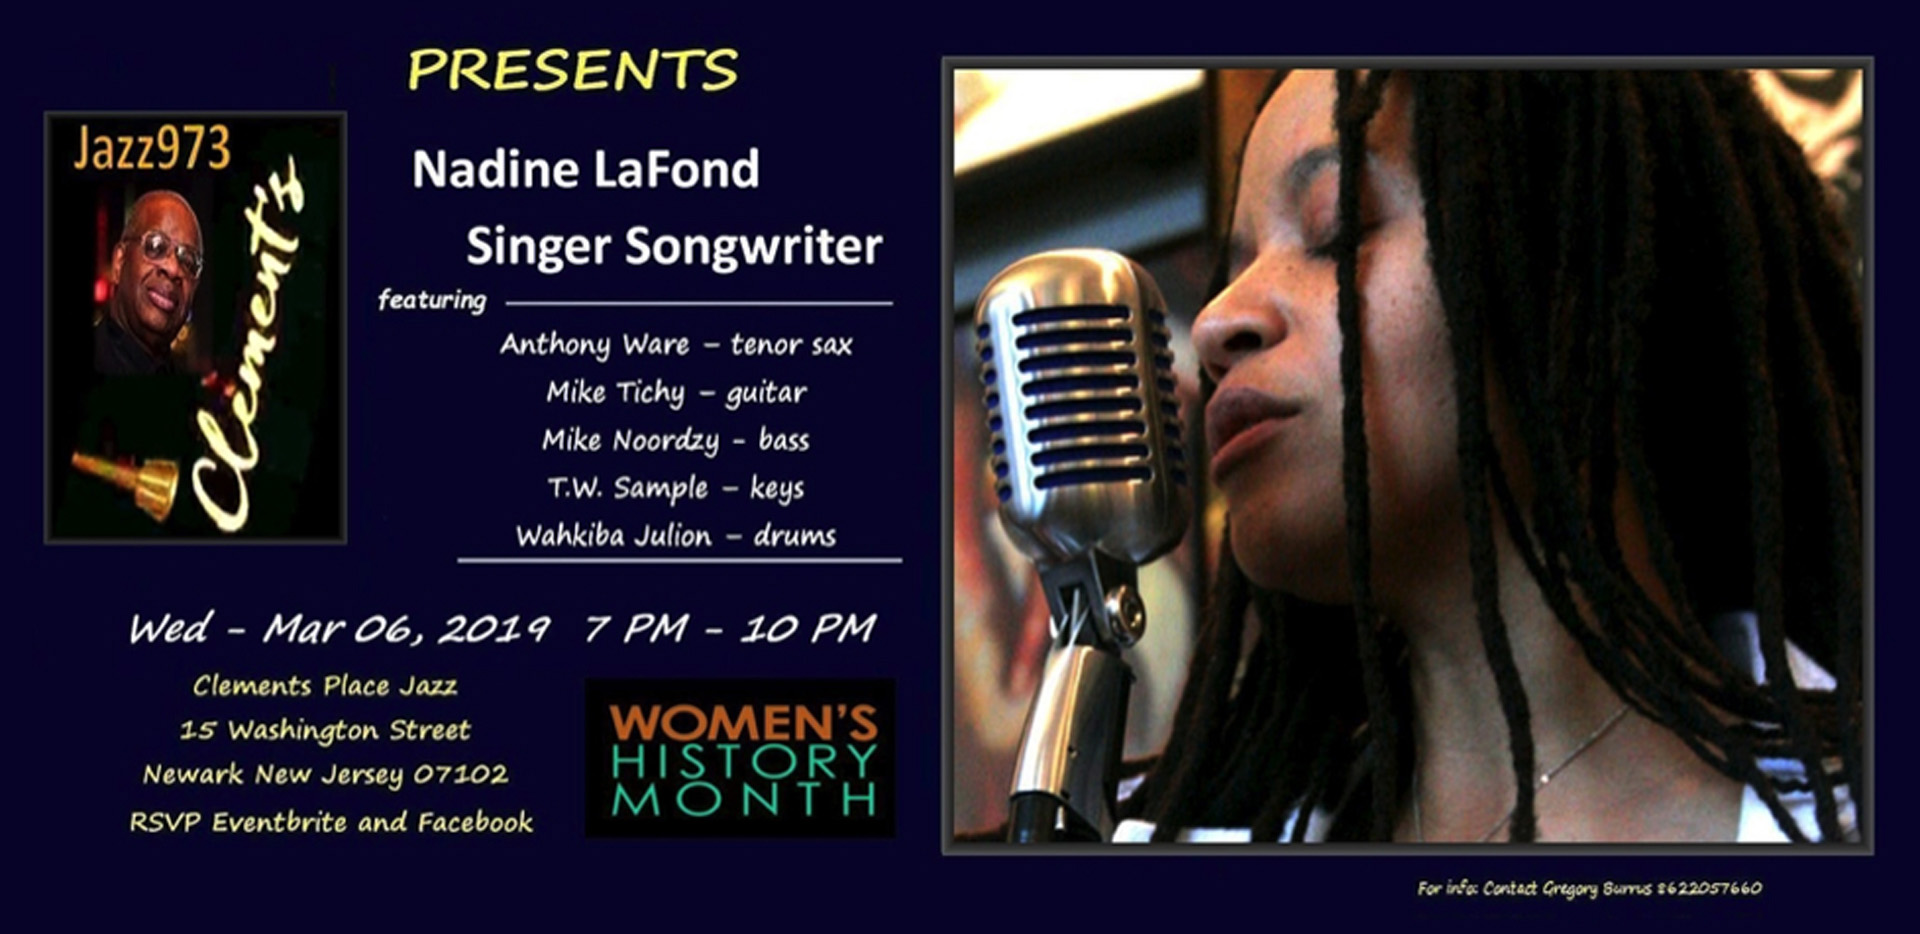 Jazz973 Presents Nadine LaFond Singer Songwriter March 6 2019.jpg